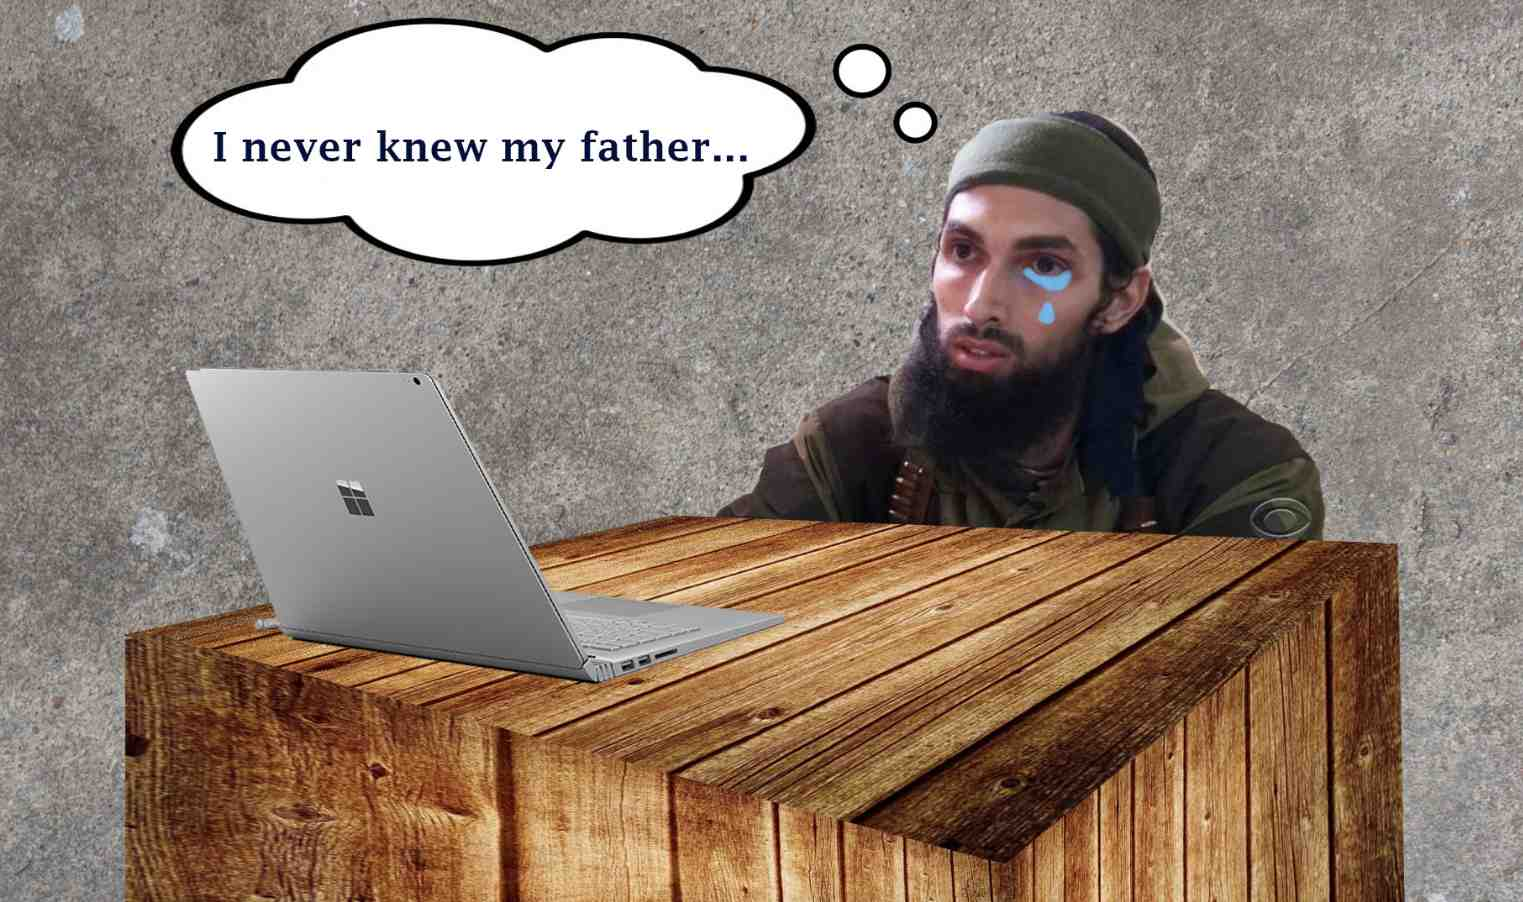 A young ISIS member mourns the loss of his father and his life choices.